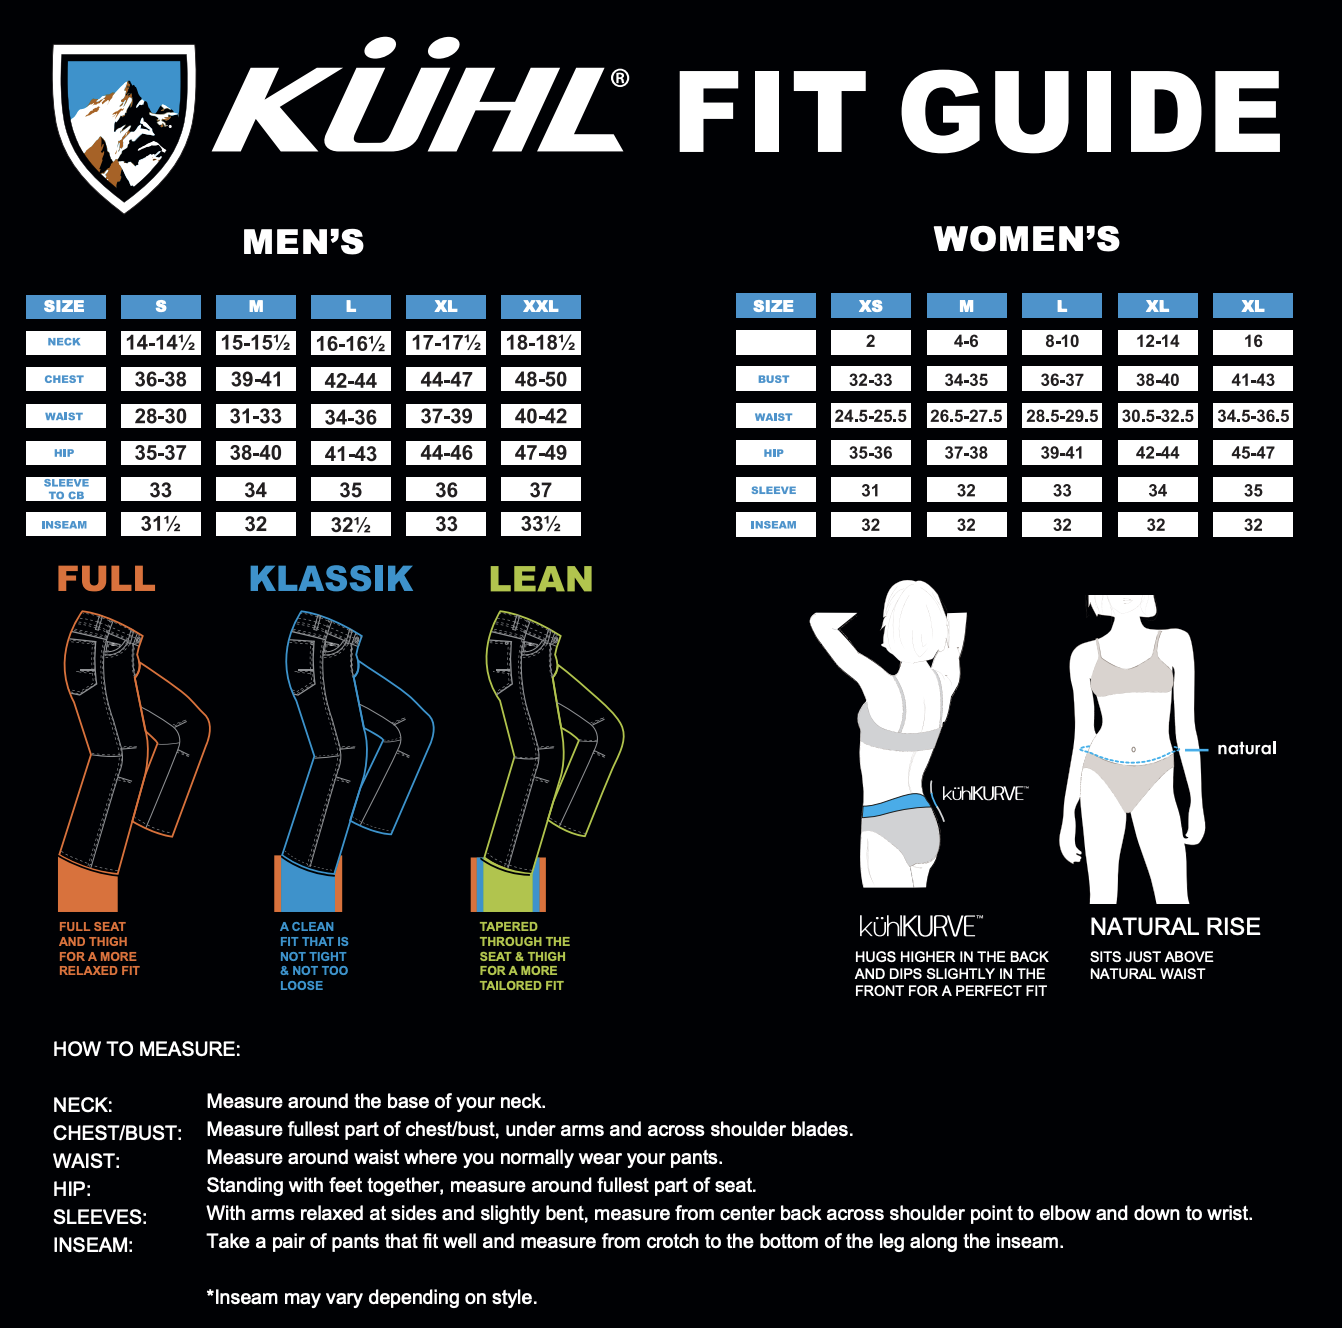 Kuhl Fit Guide